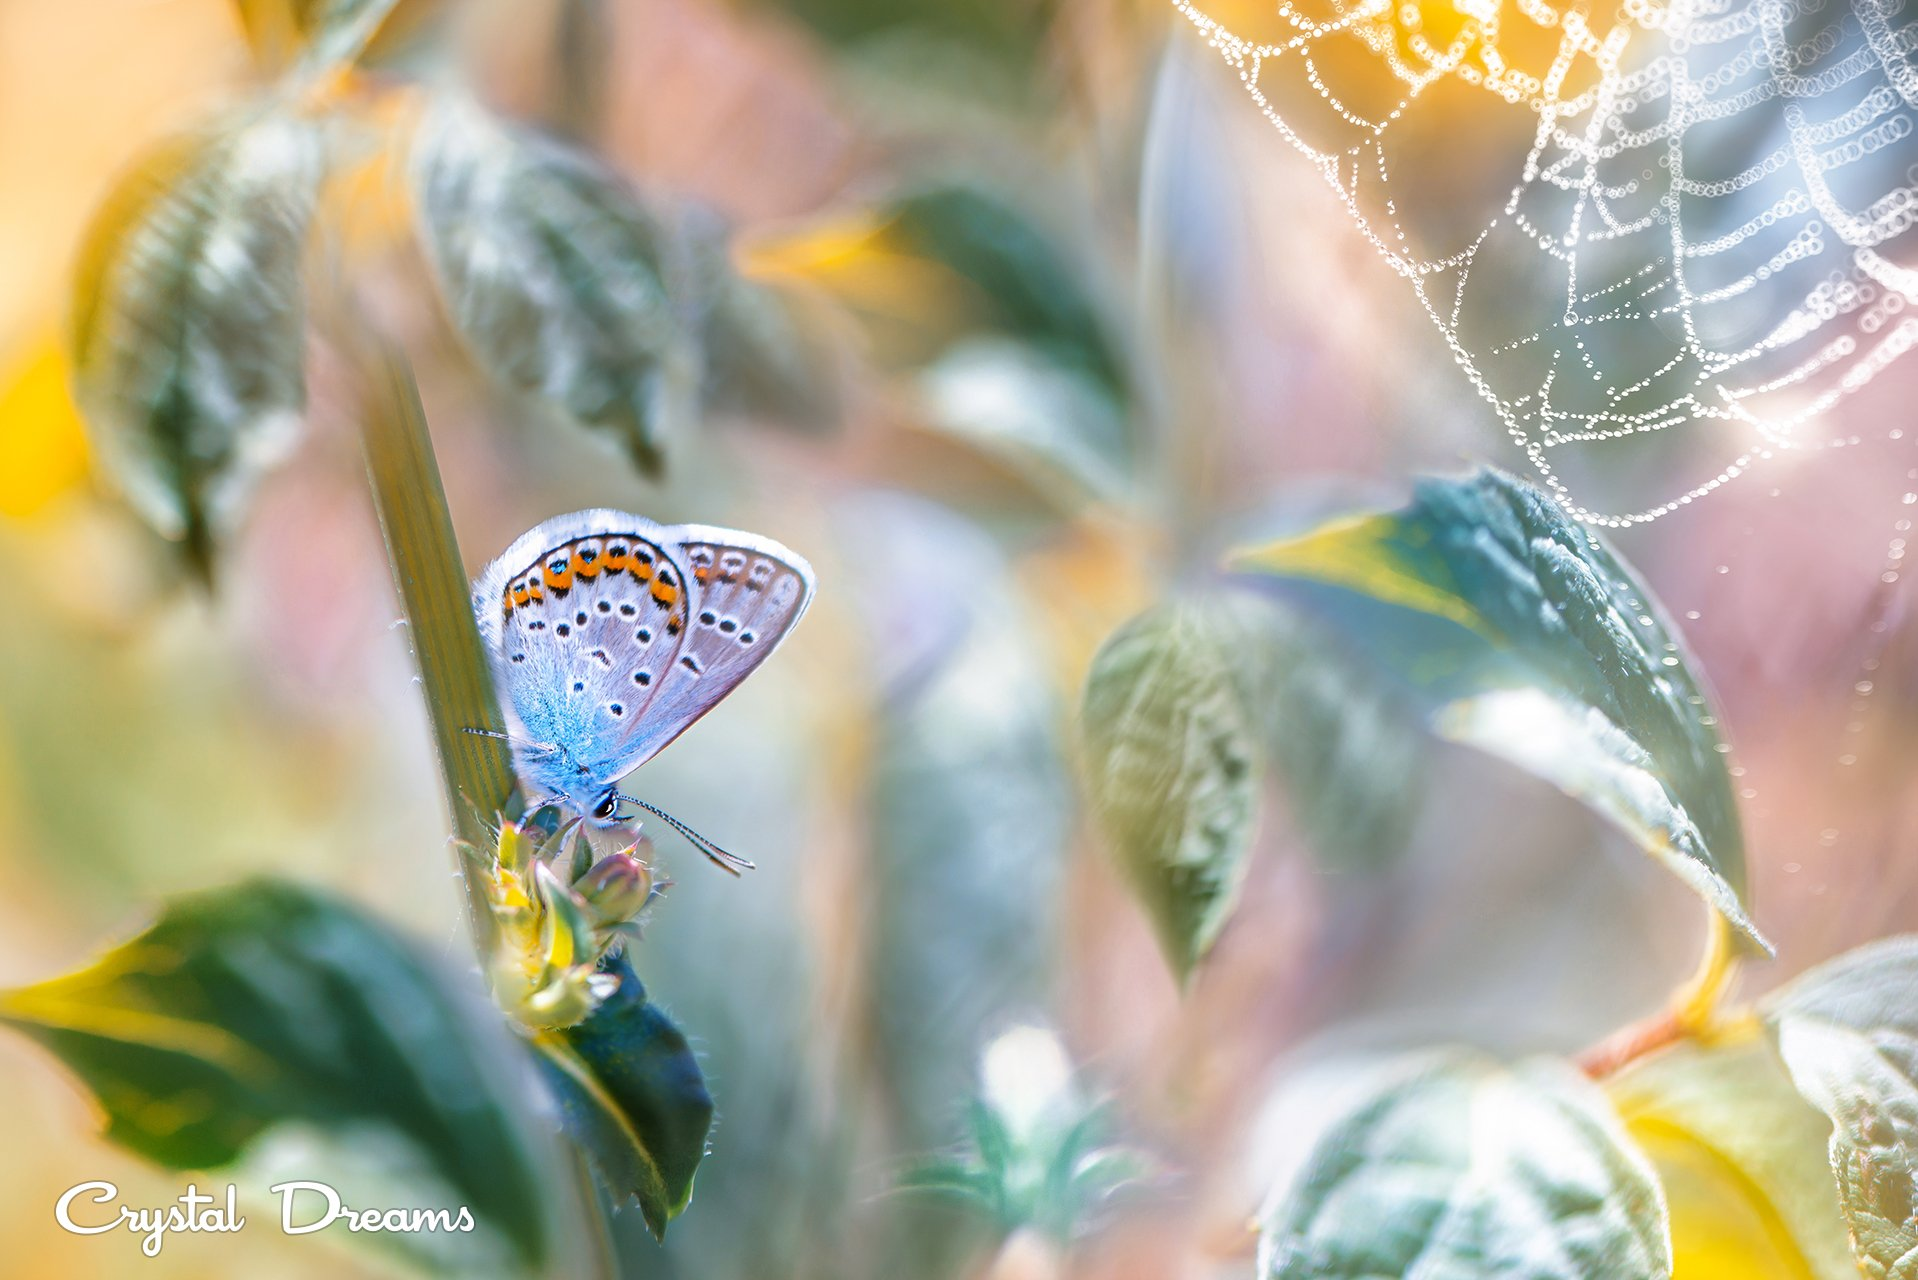 crystal dreams, macro, summer, color, art, nature, butterfly, Крылова Татьяна